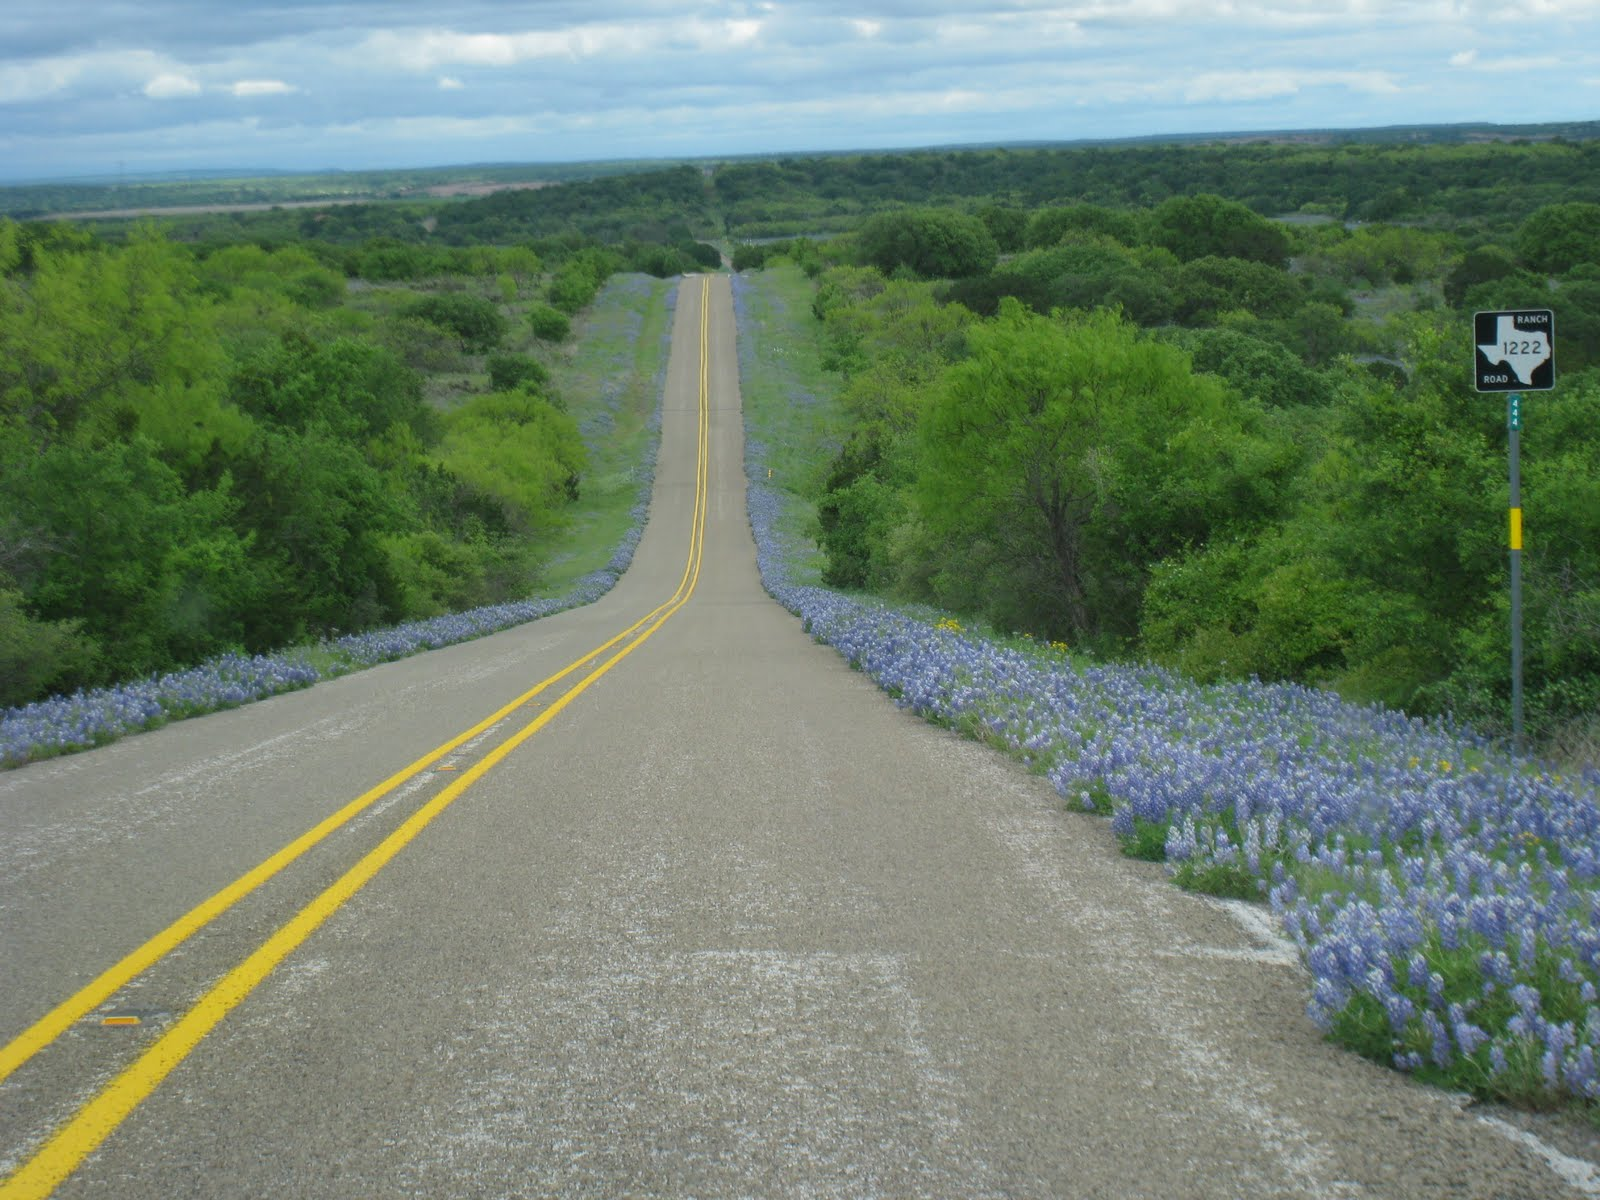 Texas Country Wallpaper Texas hill country flowers 1600x1200